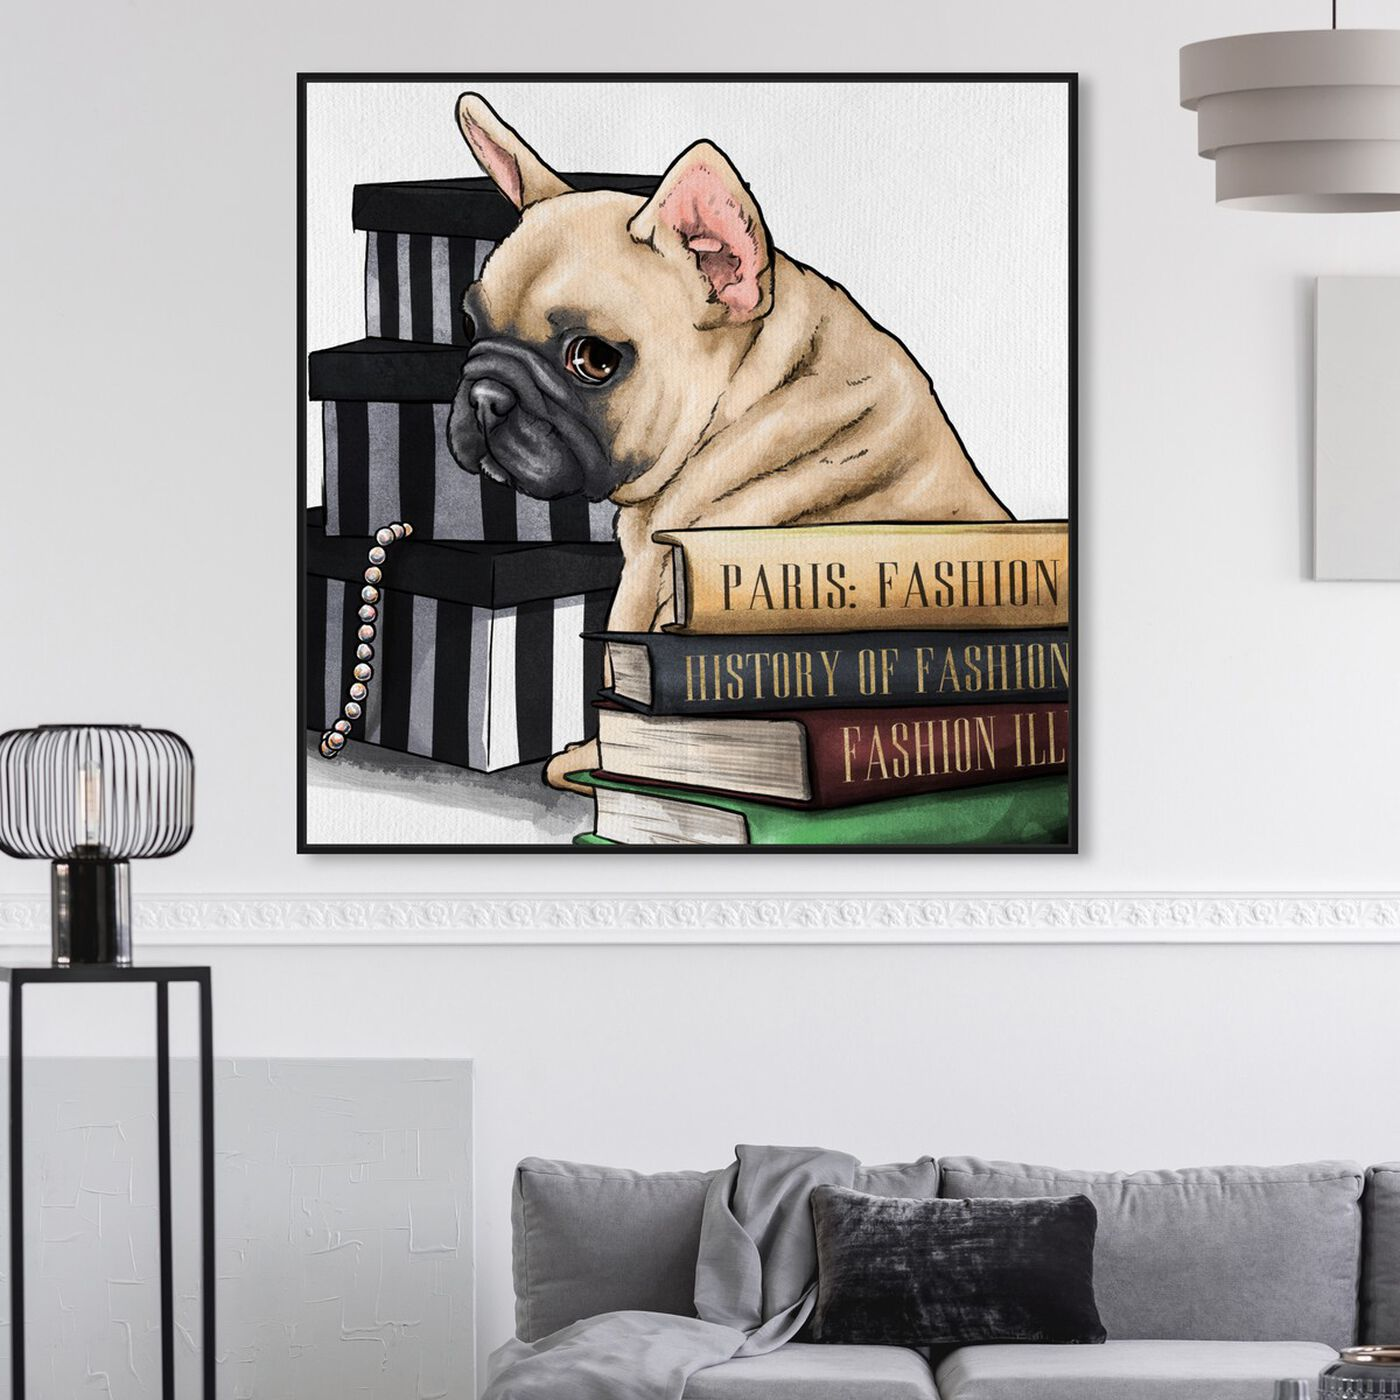 Hanging view of Fashion Books Frenchie featuring animals and dogs and puppies art.